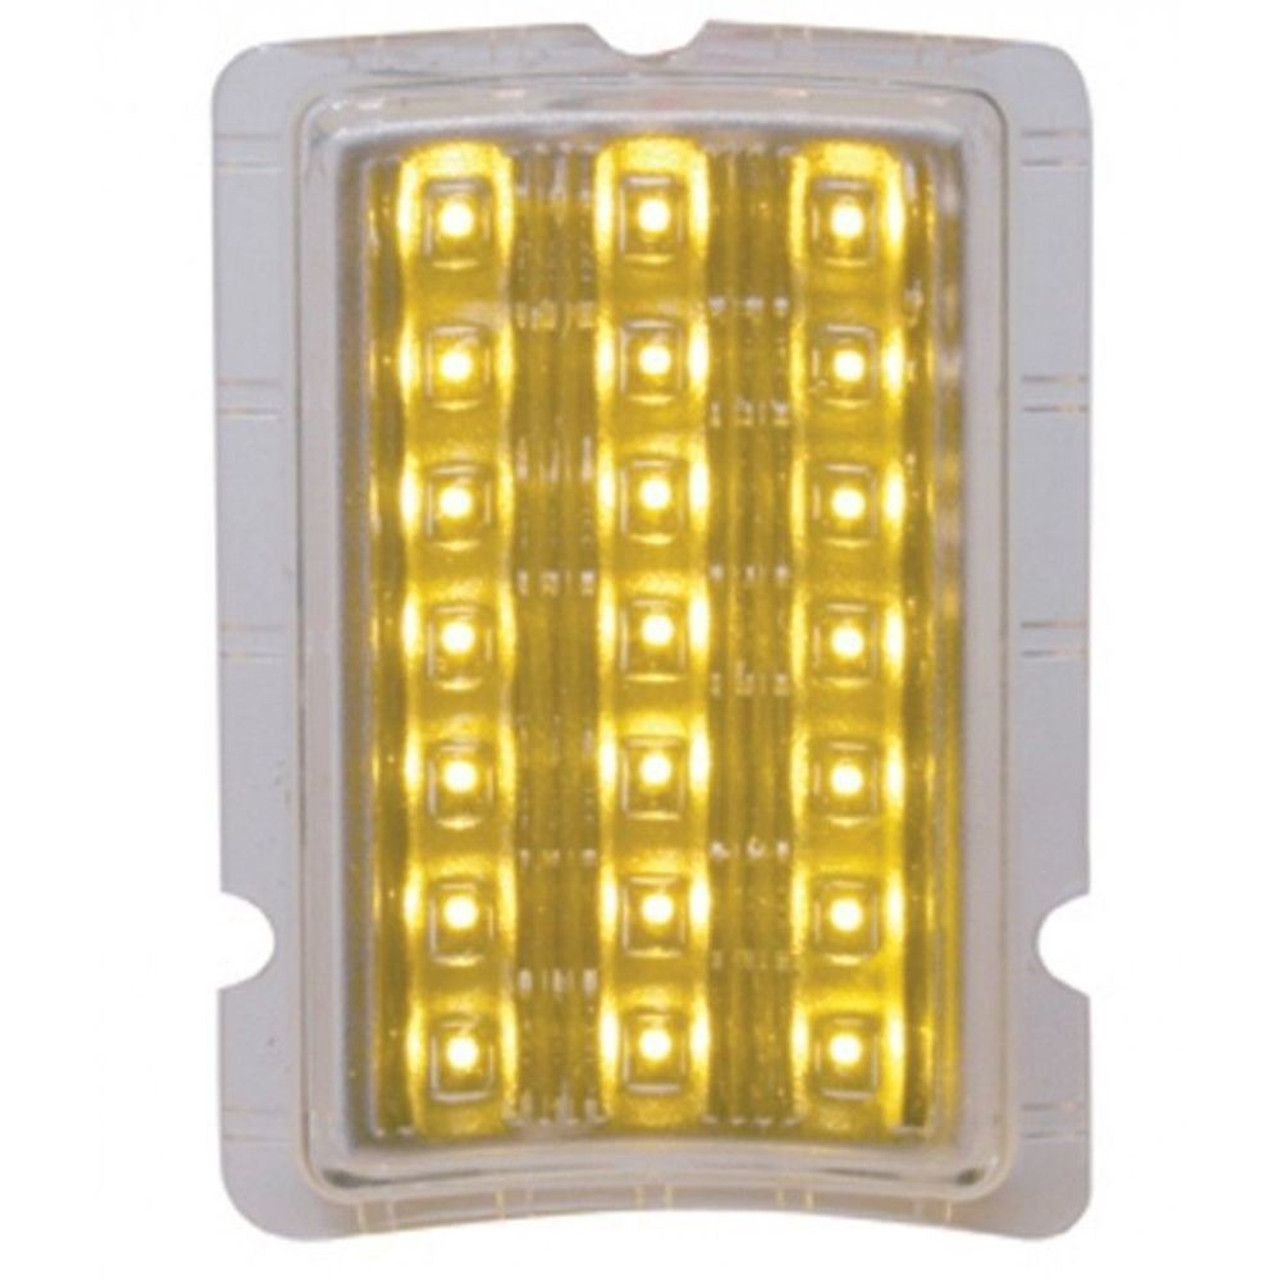 LED Turn Signal & Parking Light, Amber LED, Compatible with Ford 1940 Car, 40-41 Truck